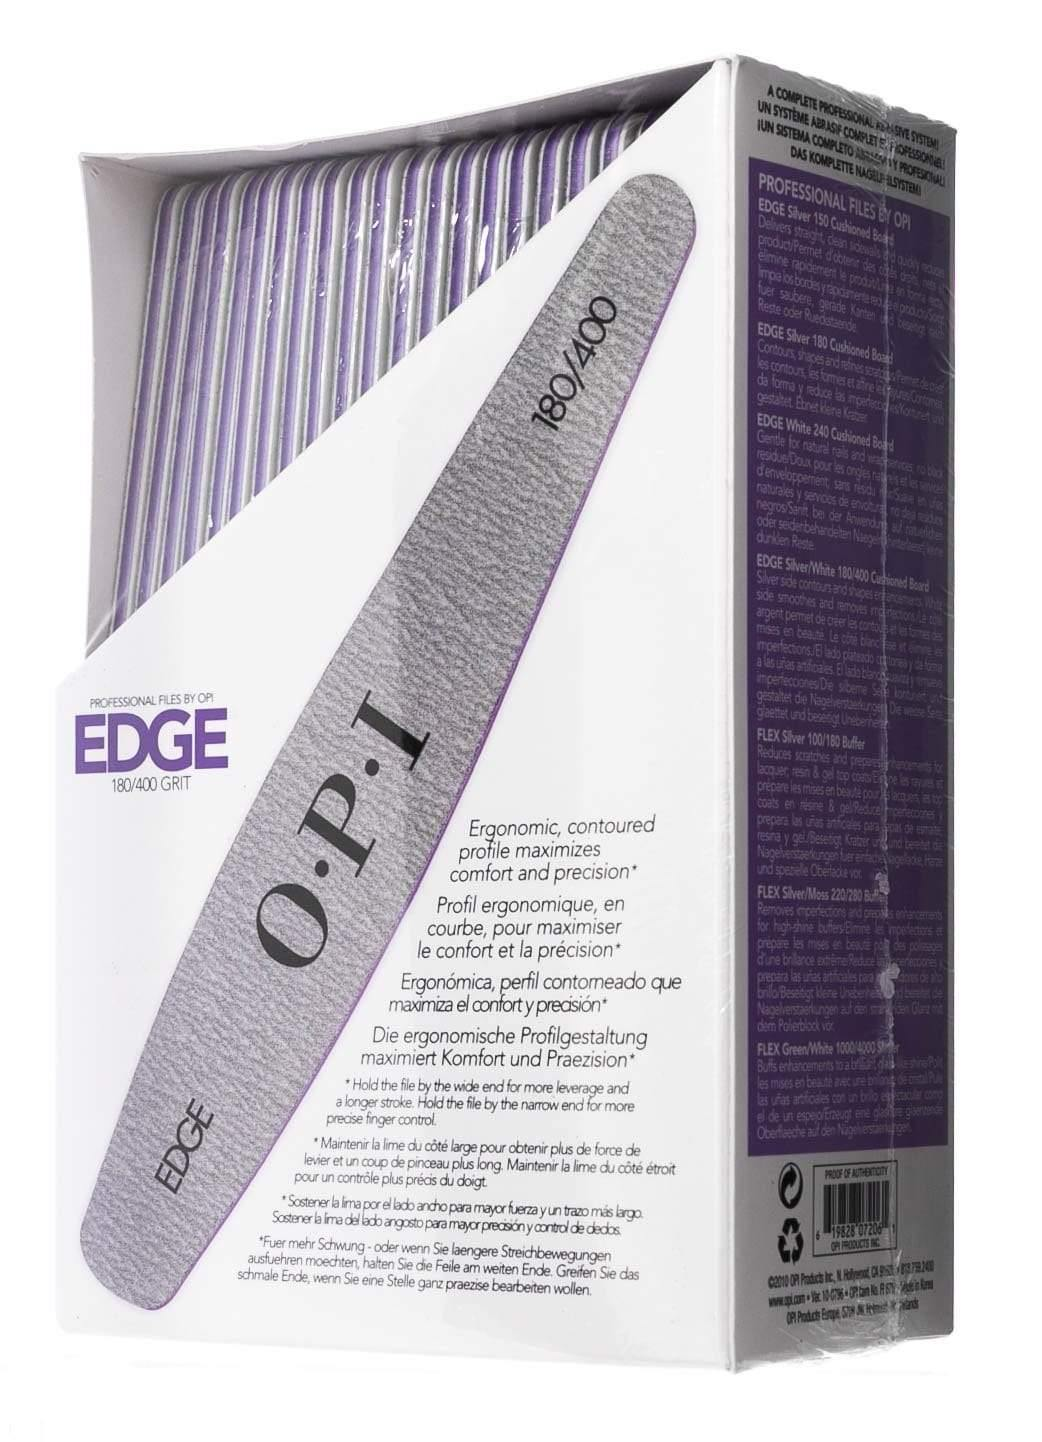 OPI, OPI Nail Files Edge Silver 180/400 Grit 48 Piece Pack, Mk Beauty Club, Nail Files